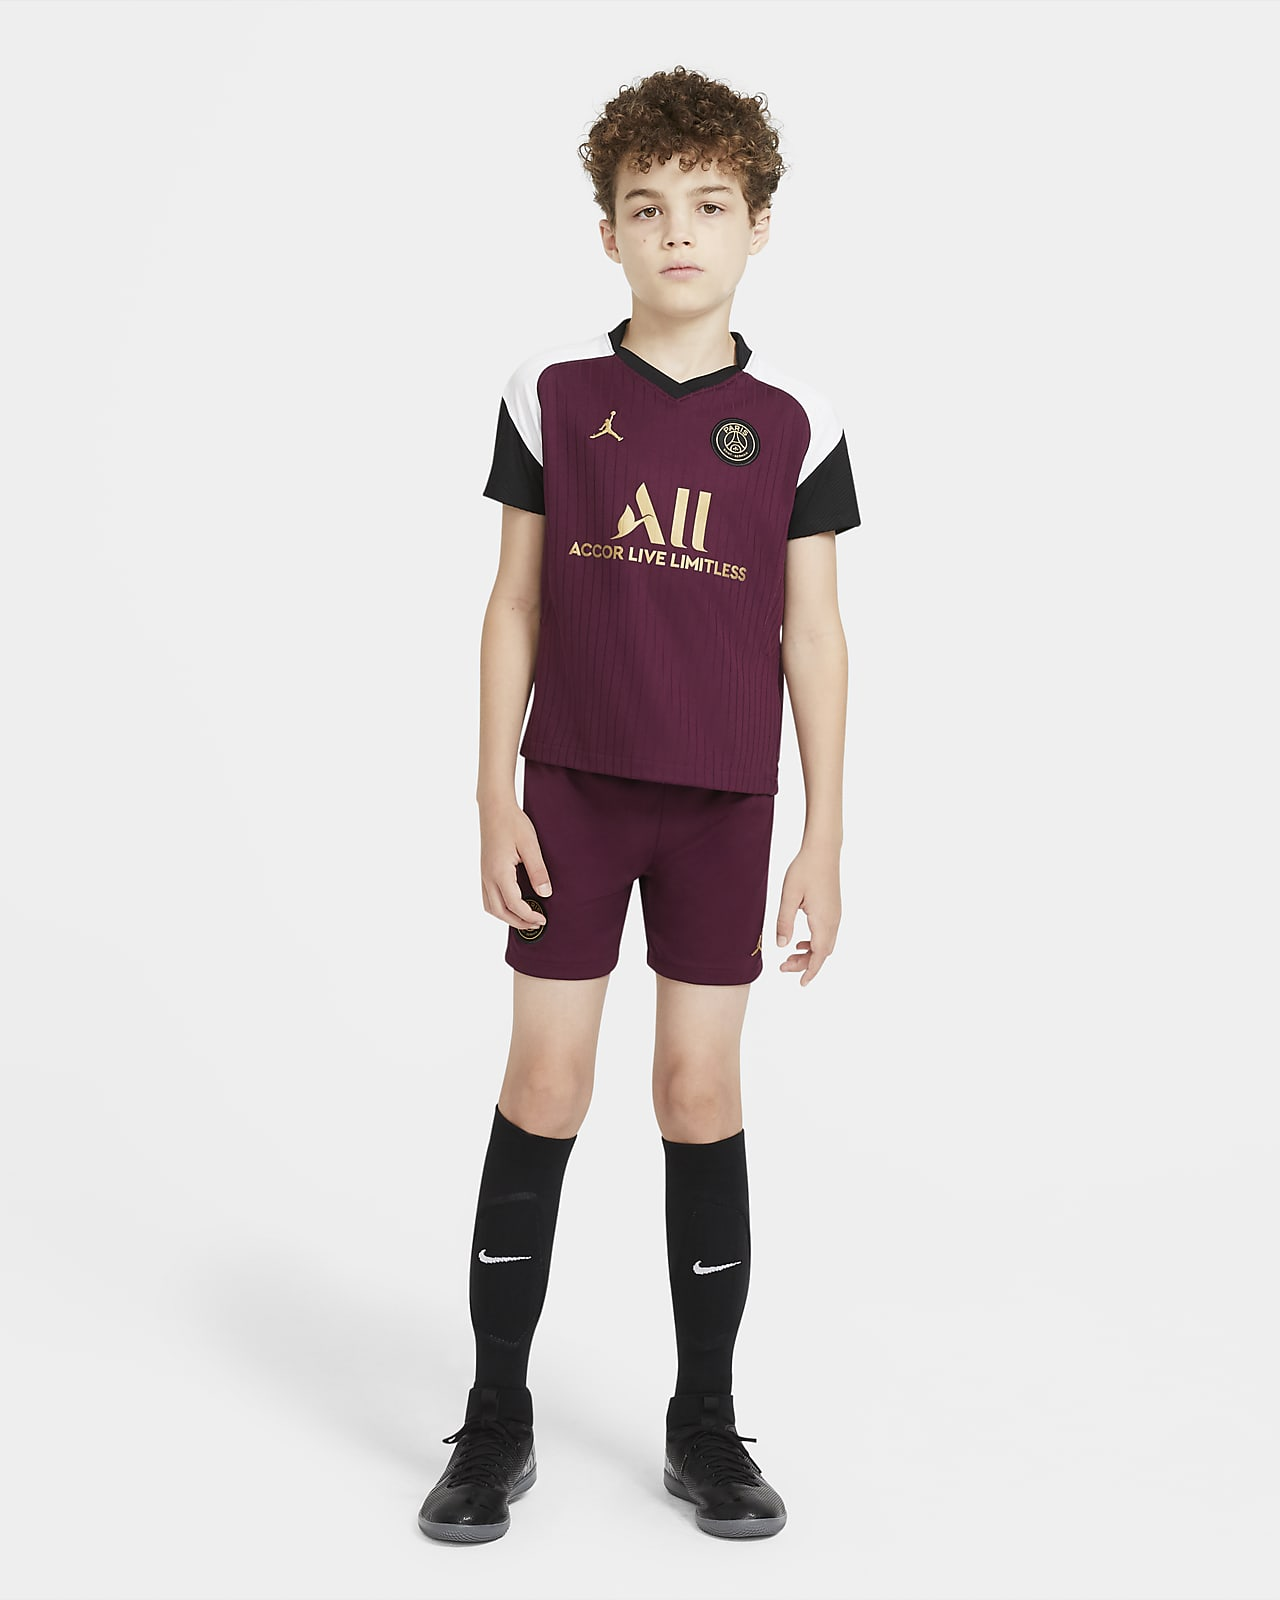 Paris Saint-Germain 2020/21 Third Younger Kids' Football Kit